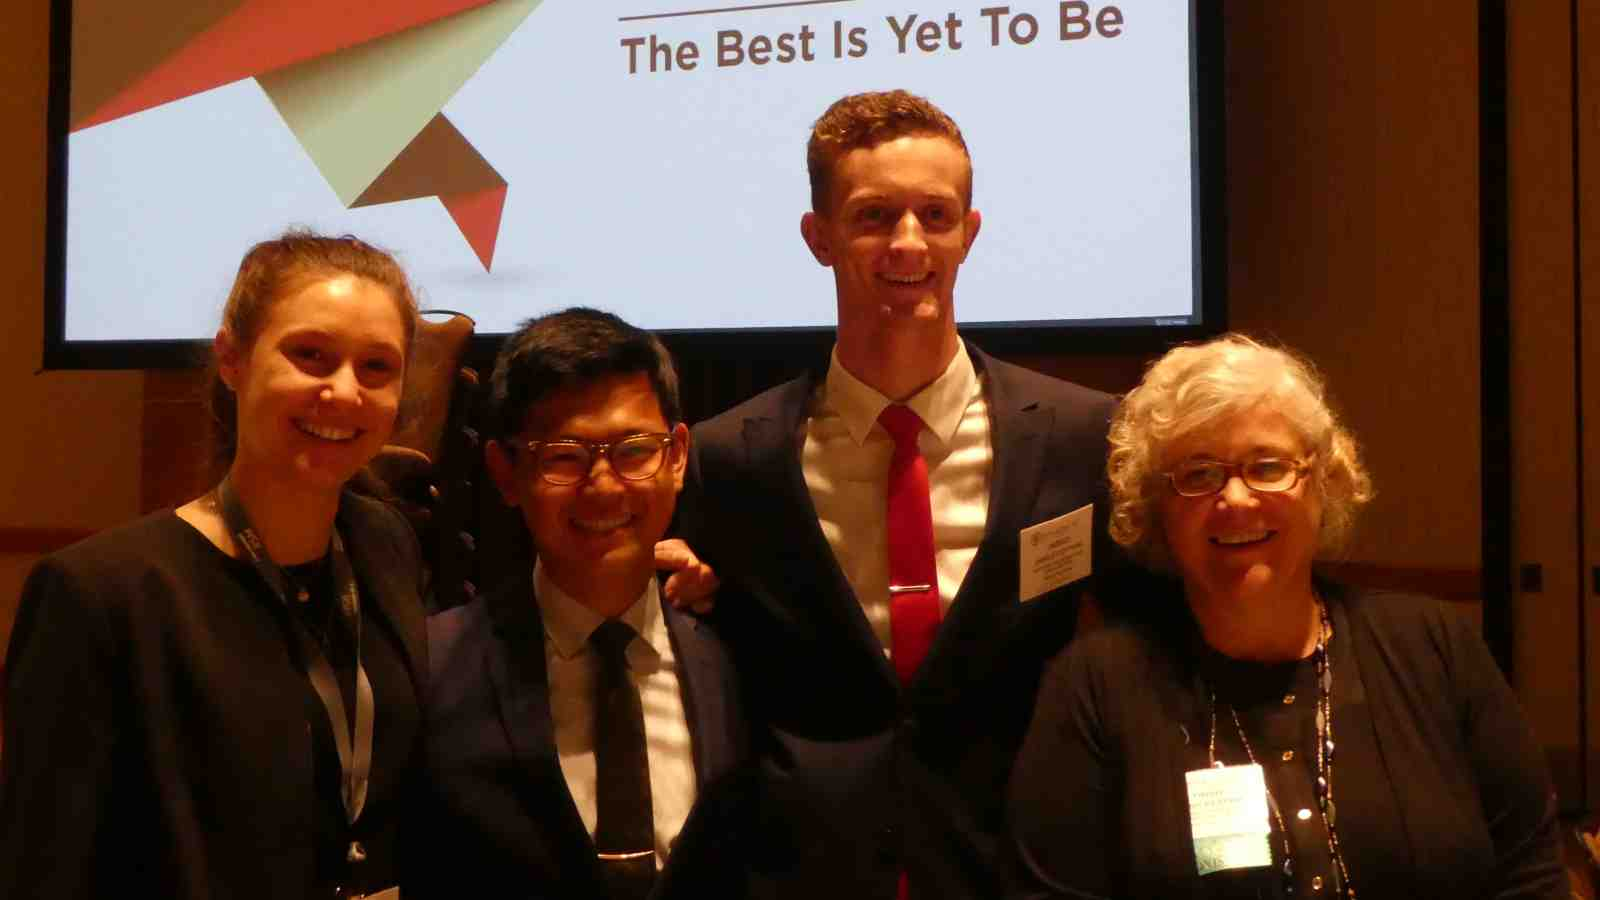 Beta Alpha Psi's Victoria University Chapter members Maria Burns, David Cheng, Jared Cotton and their Faculty advisor Trish Keeper